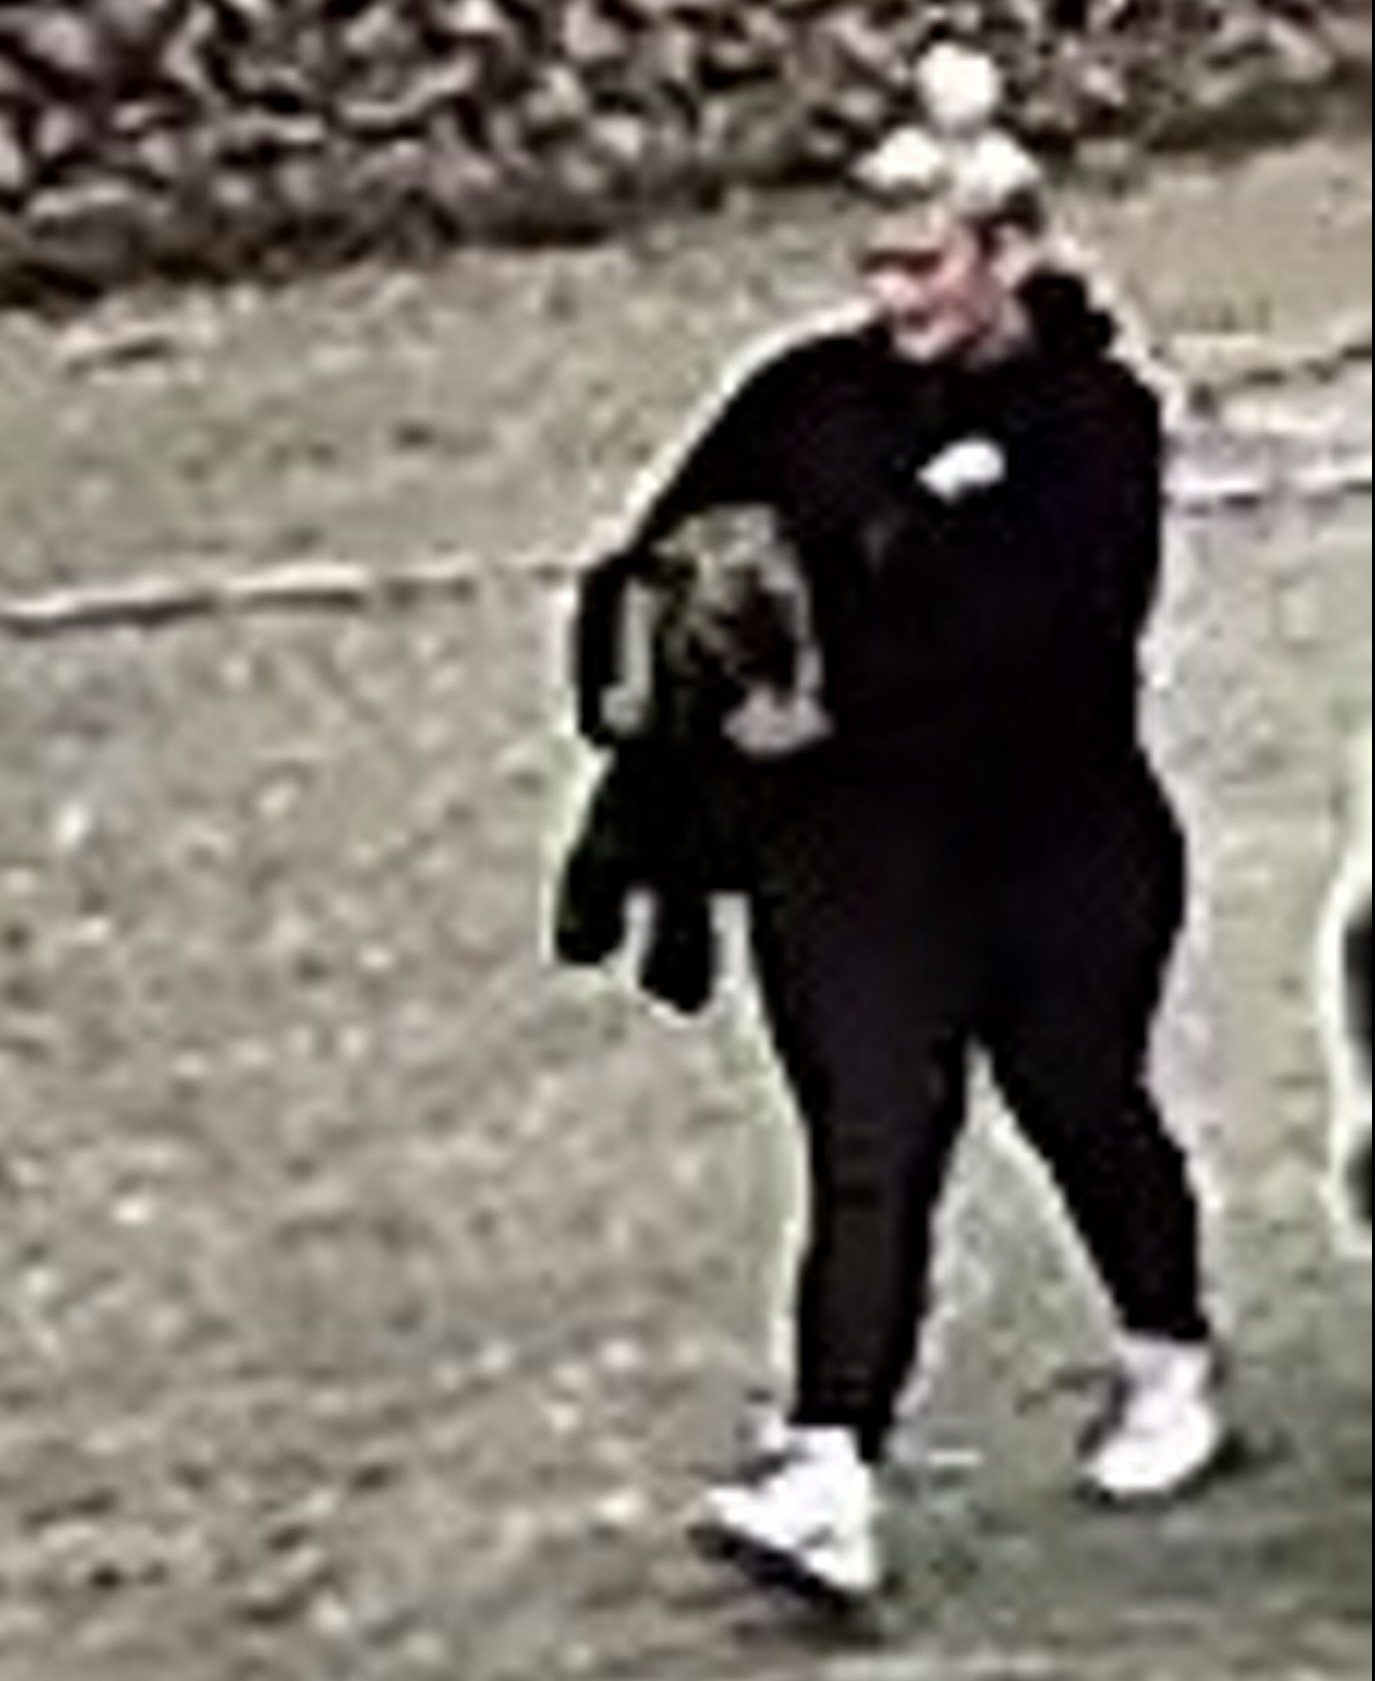 Pictured: Last week Officers investigating the theft of Bella the dog issued CCTV of a woman they wanted to talk to.??A worried family has been reunited with their French Bulldog puppy after the ?2,000 dog was stolen from a top motoring museum - and handed in to a vet's 70 miles away. A week after puppy Bella disappeared and a social media campaign had been launched, owner Abbey Joiner received a mysterious phone call telling her the valuable dog had been dropped off at a vets in Windsor, Berks.??Overjoyed at the news, the family immediately drove from their home in Herne Bay, Kent, making the 190-mile round trip in their Volkswagen Touran to collect their beloved dog. Bella had been spotted on CCTV being carried away from Beaulieu Motor Museum, Hants, just moments after the family tied her up in the museum's designated dog area. SEE OUR COPY FOR DETAILS. Please byline: Hampshire Police/Solent News ? Hampshire Police/Solent News & Photo Agency UK +44 (0) 2380 458800